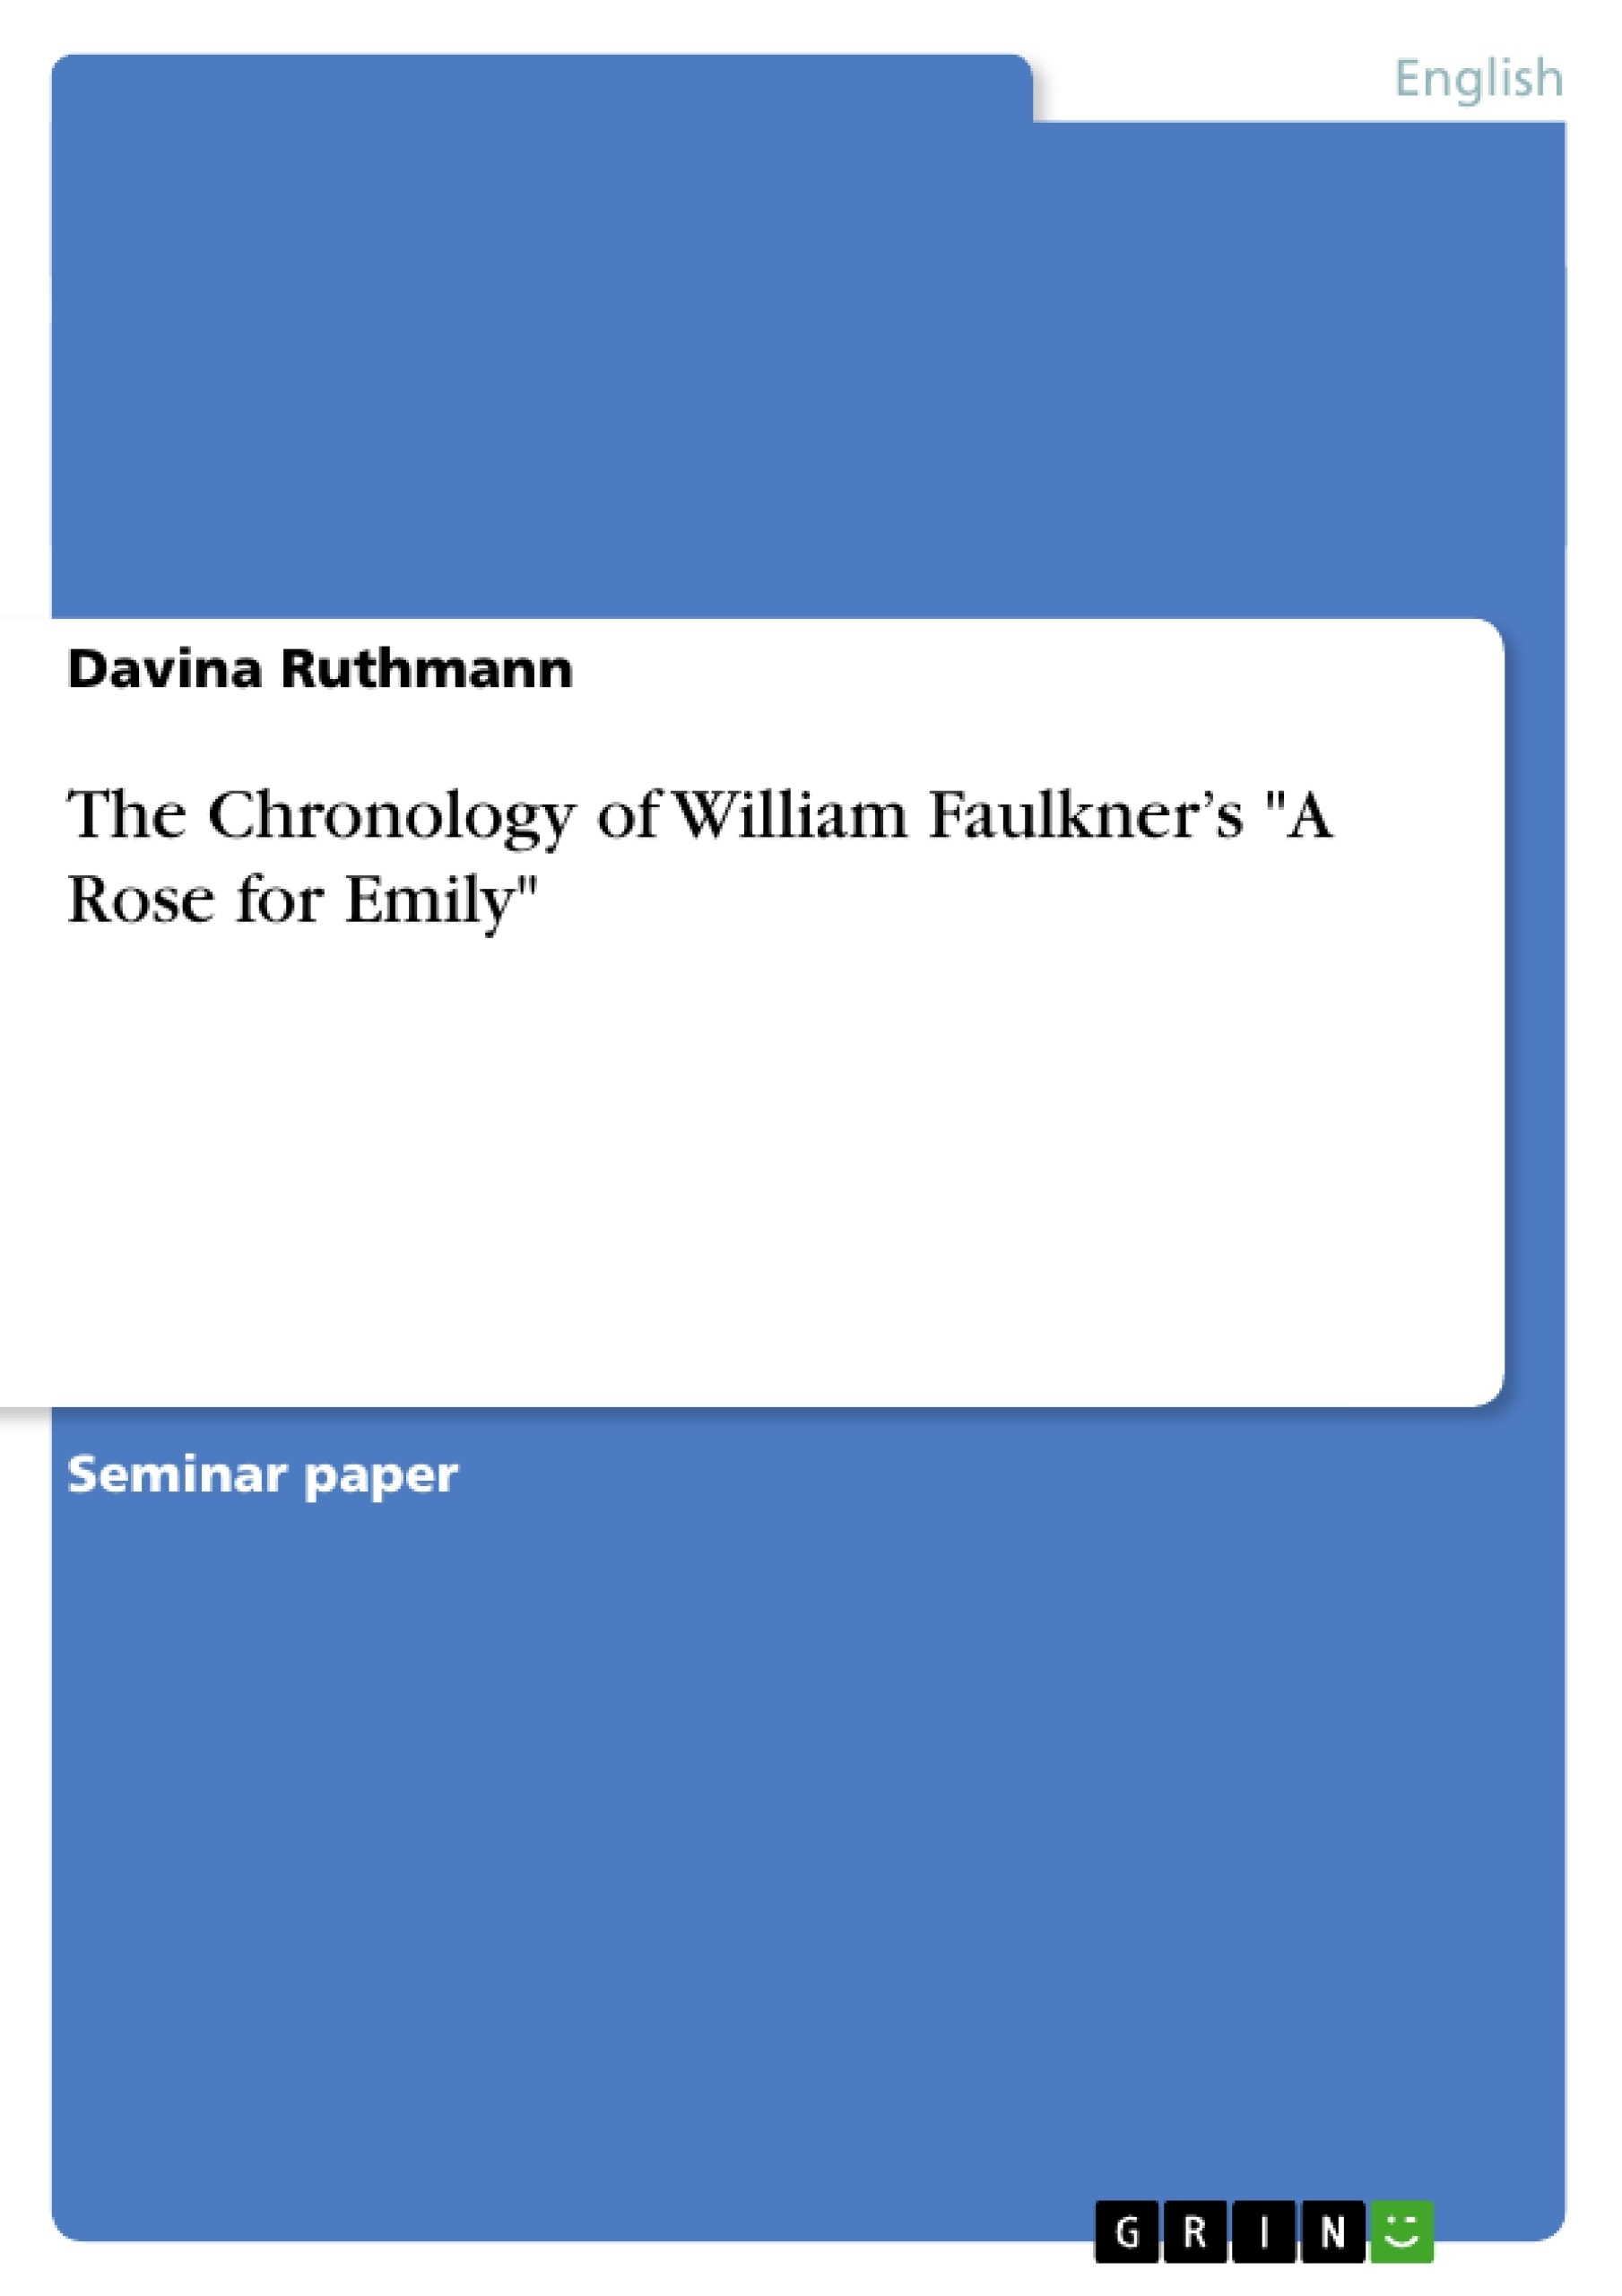 """Title: The Chronology of William Faulkner's """"A Rose for Emily"""""""